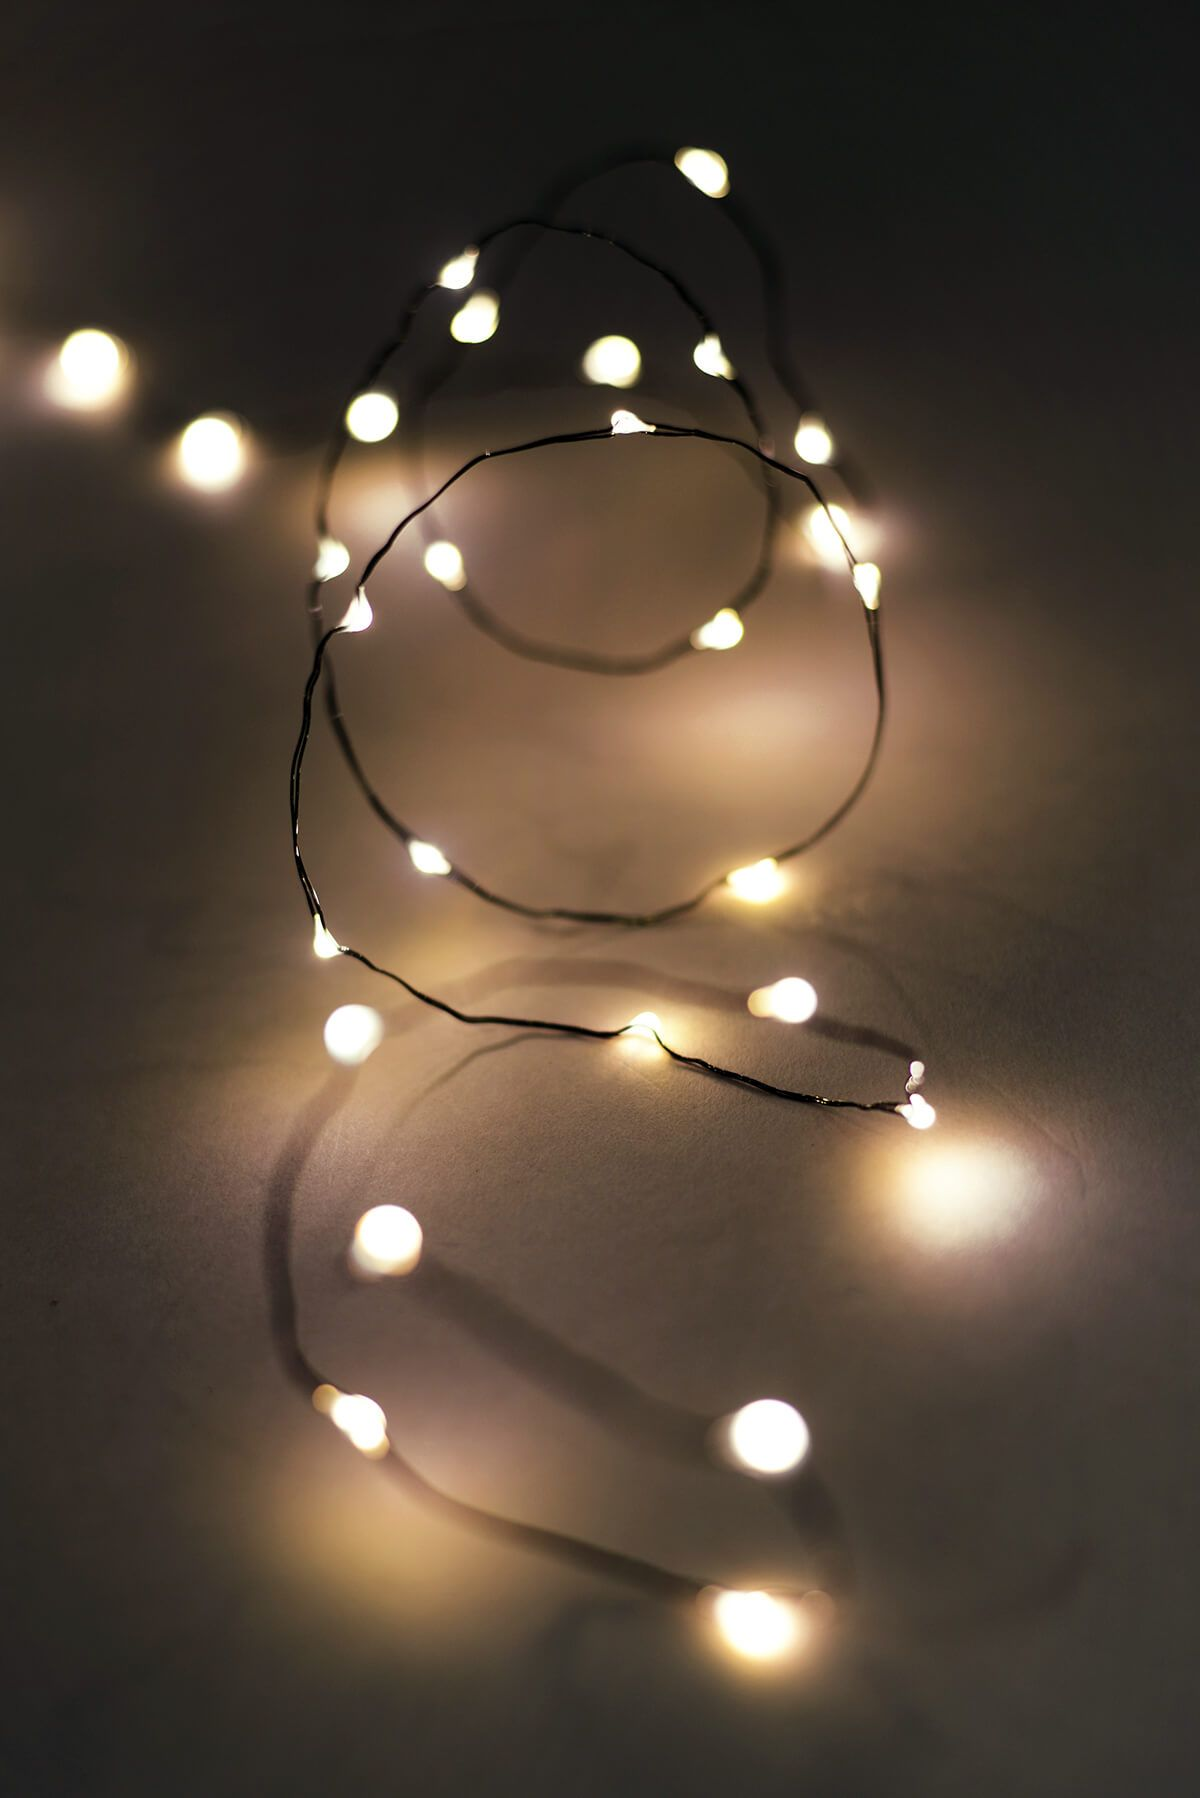 Fairy lights outdoor 10ft 60 warm white battery op fairy light fairy lights outdoor 10ft 60 warm white battery op aloadofball Image collections